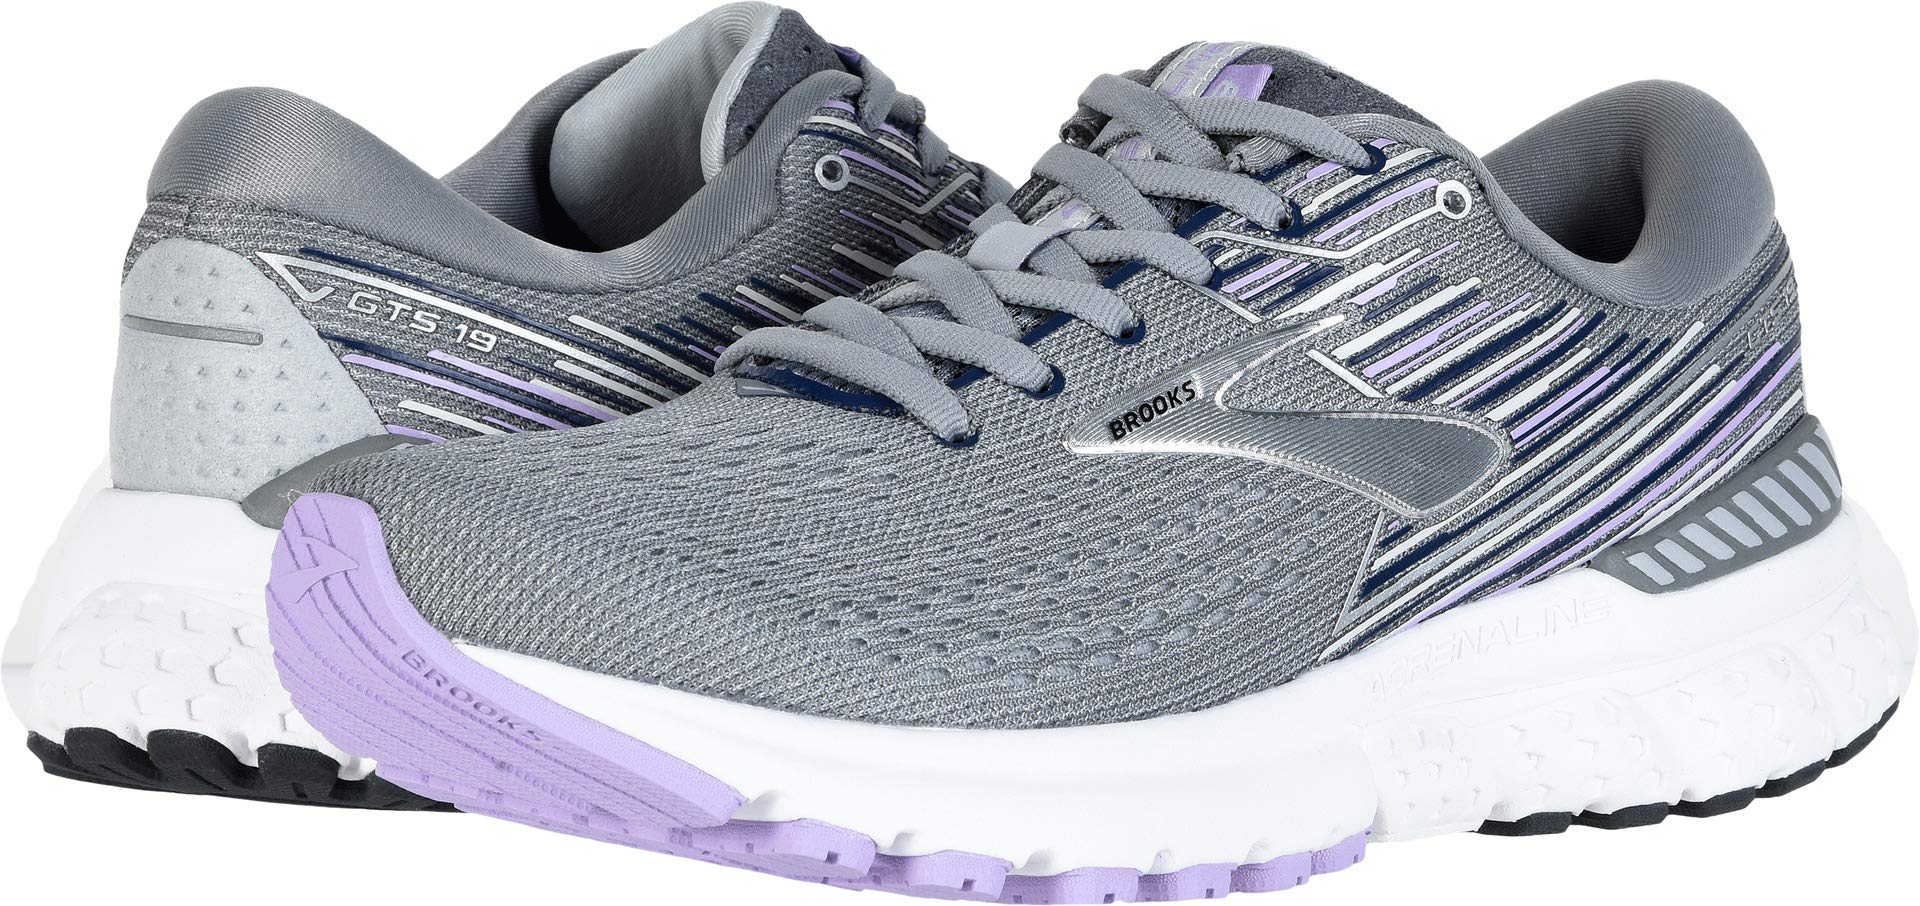 Brooks Women's Adrenaline GTS 19 Grey/Lavender/Navy 10 B US by Brooks